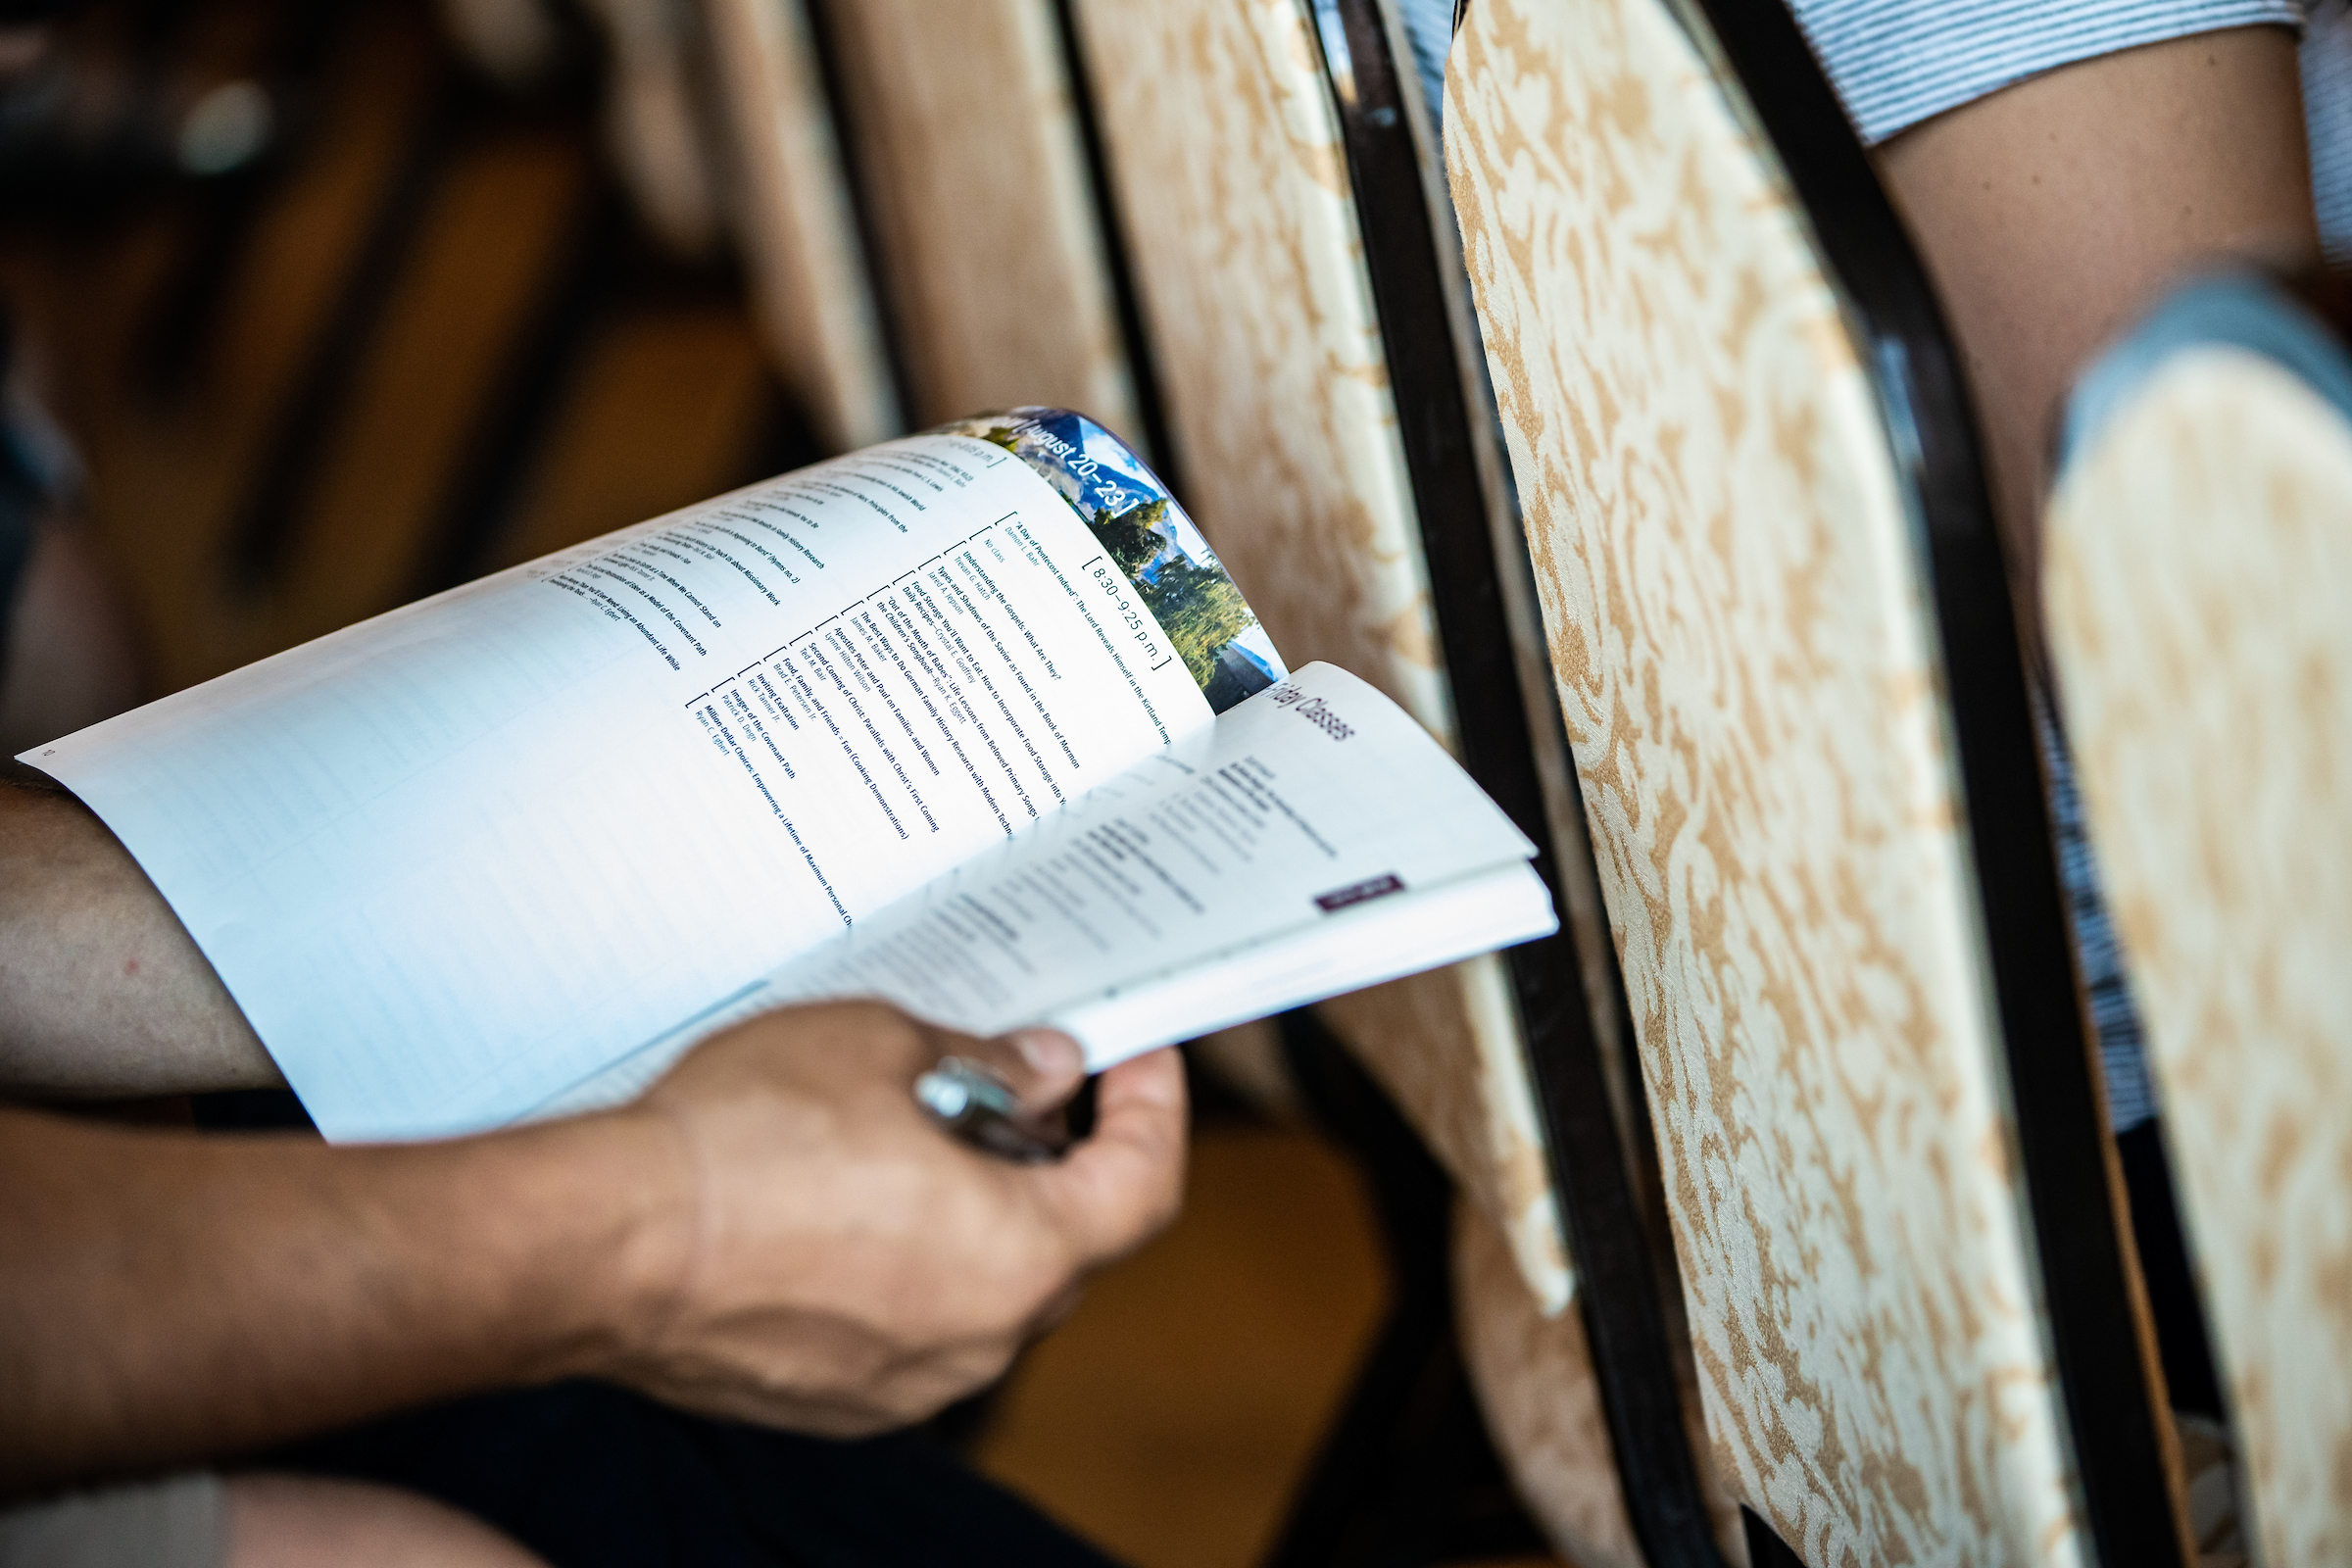 An attendee flips through the BYU Education Week class schedule on Aug. 22, 2019. The annual event was held Aug. 19-23, 2019, on the BYU campus in Provo, Utah.